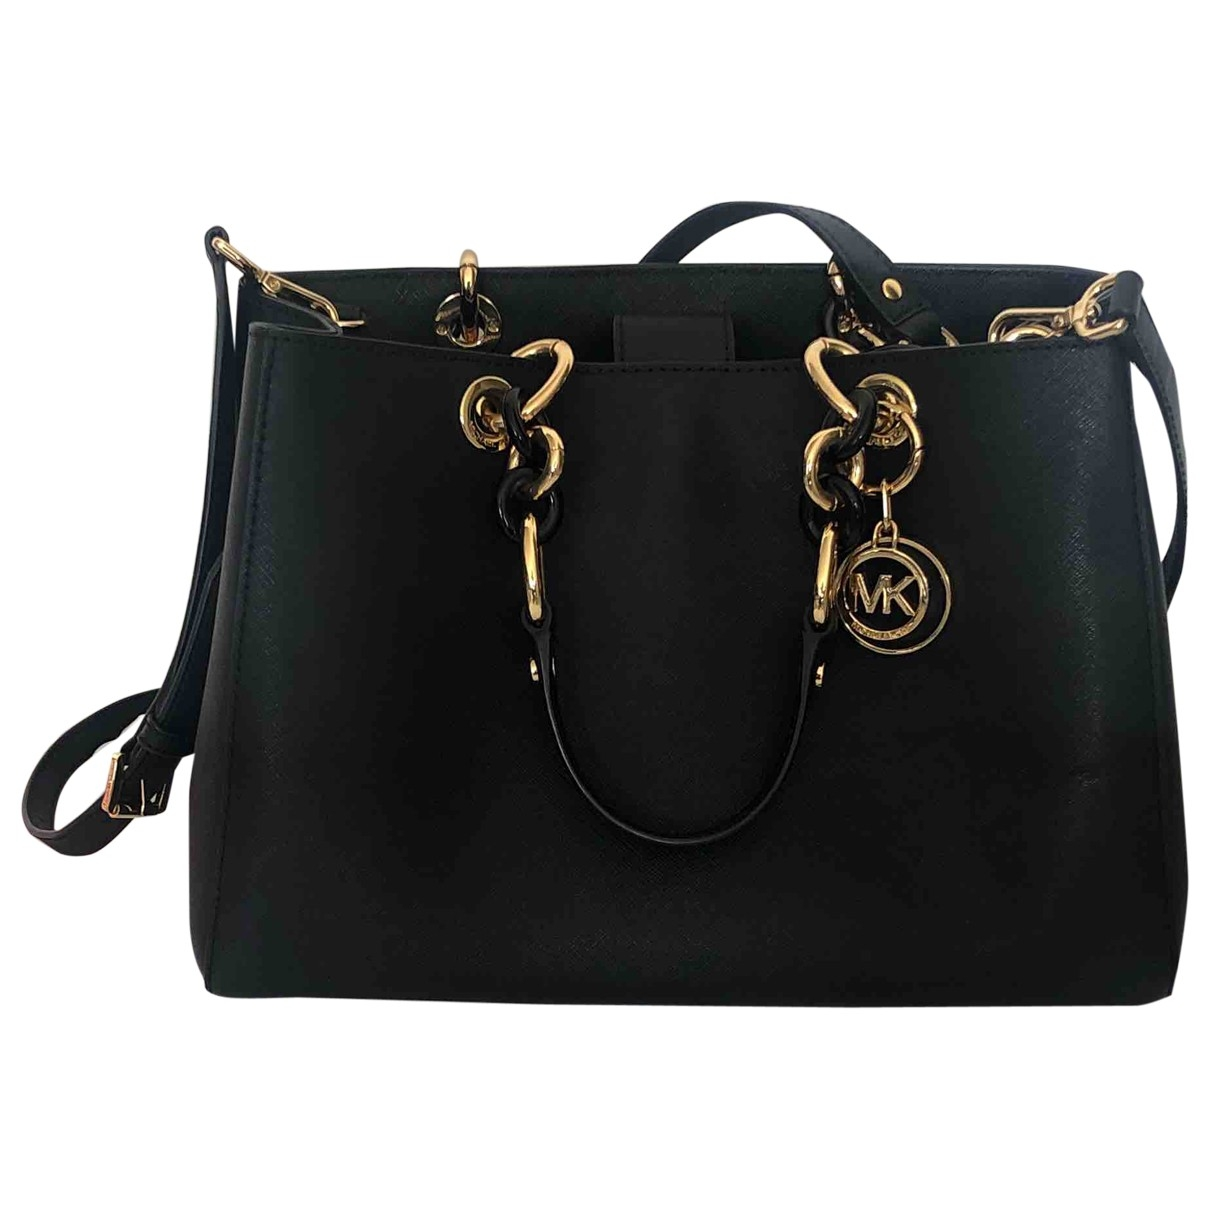 Michael Kors Cynthia Black Leather handbag for Women \N